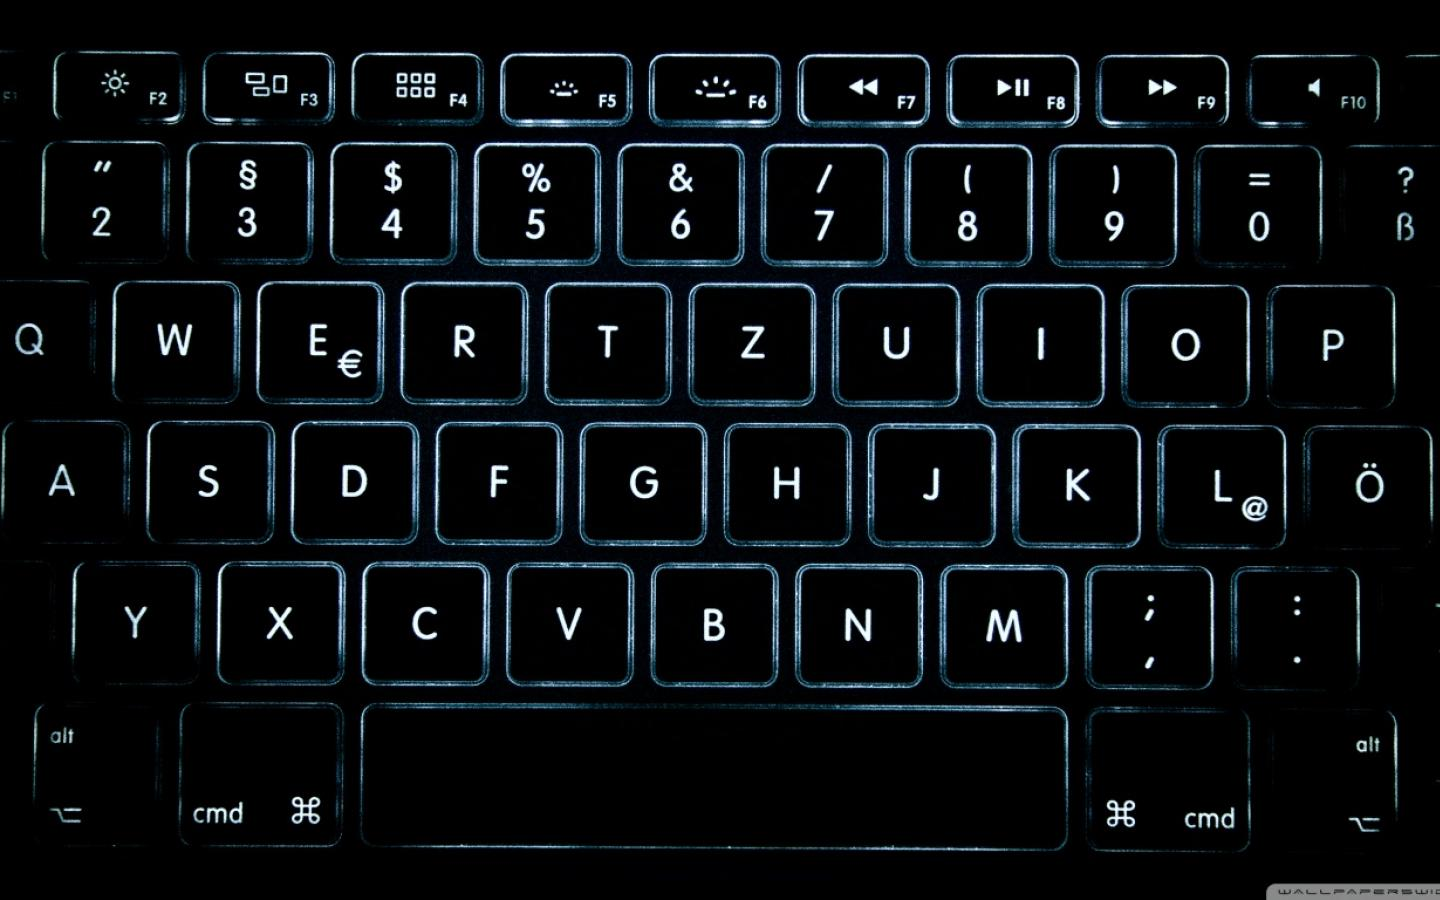 just_keys_computer_technology_keyboard_1440x900_hd-wallpaper-1561328.jpg